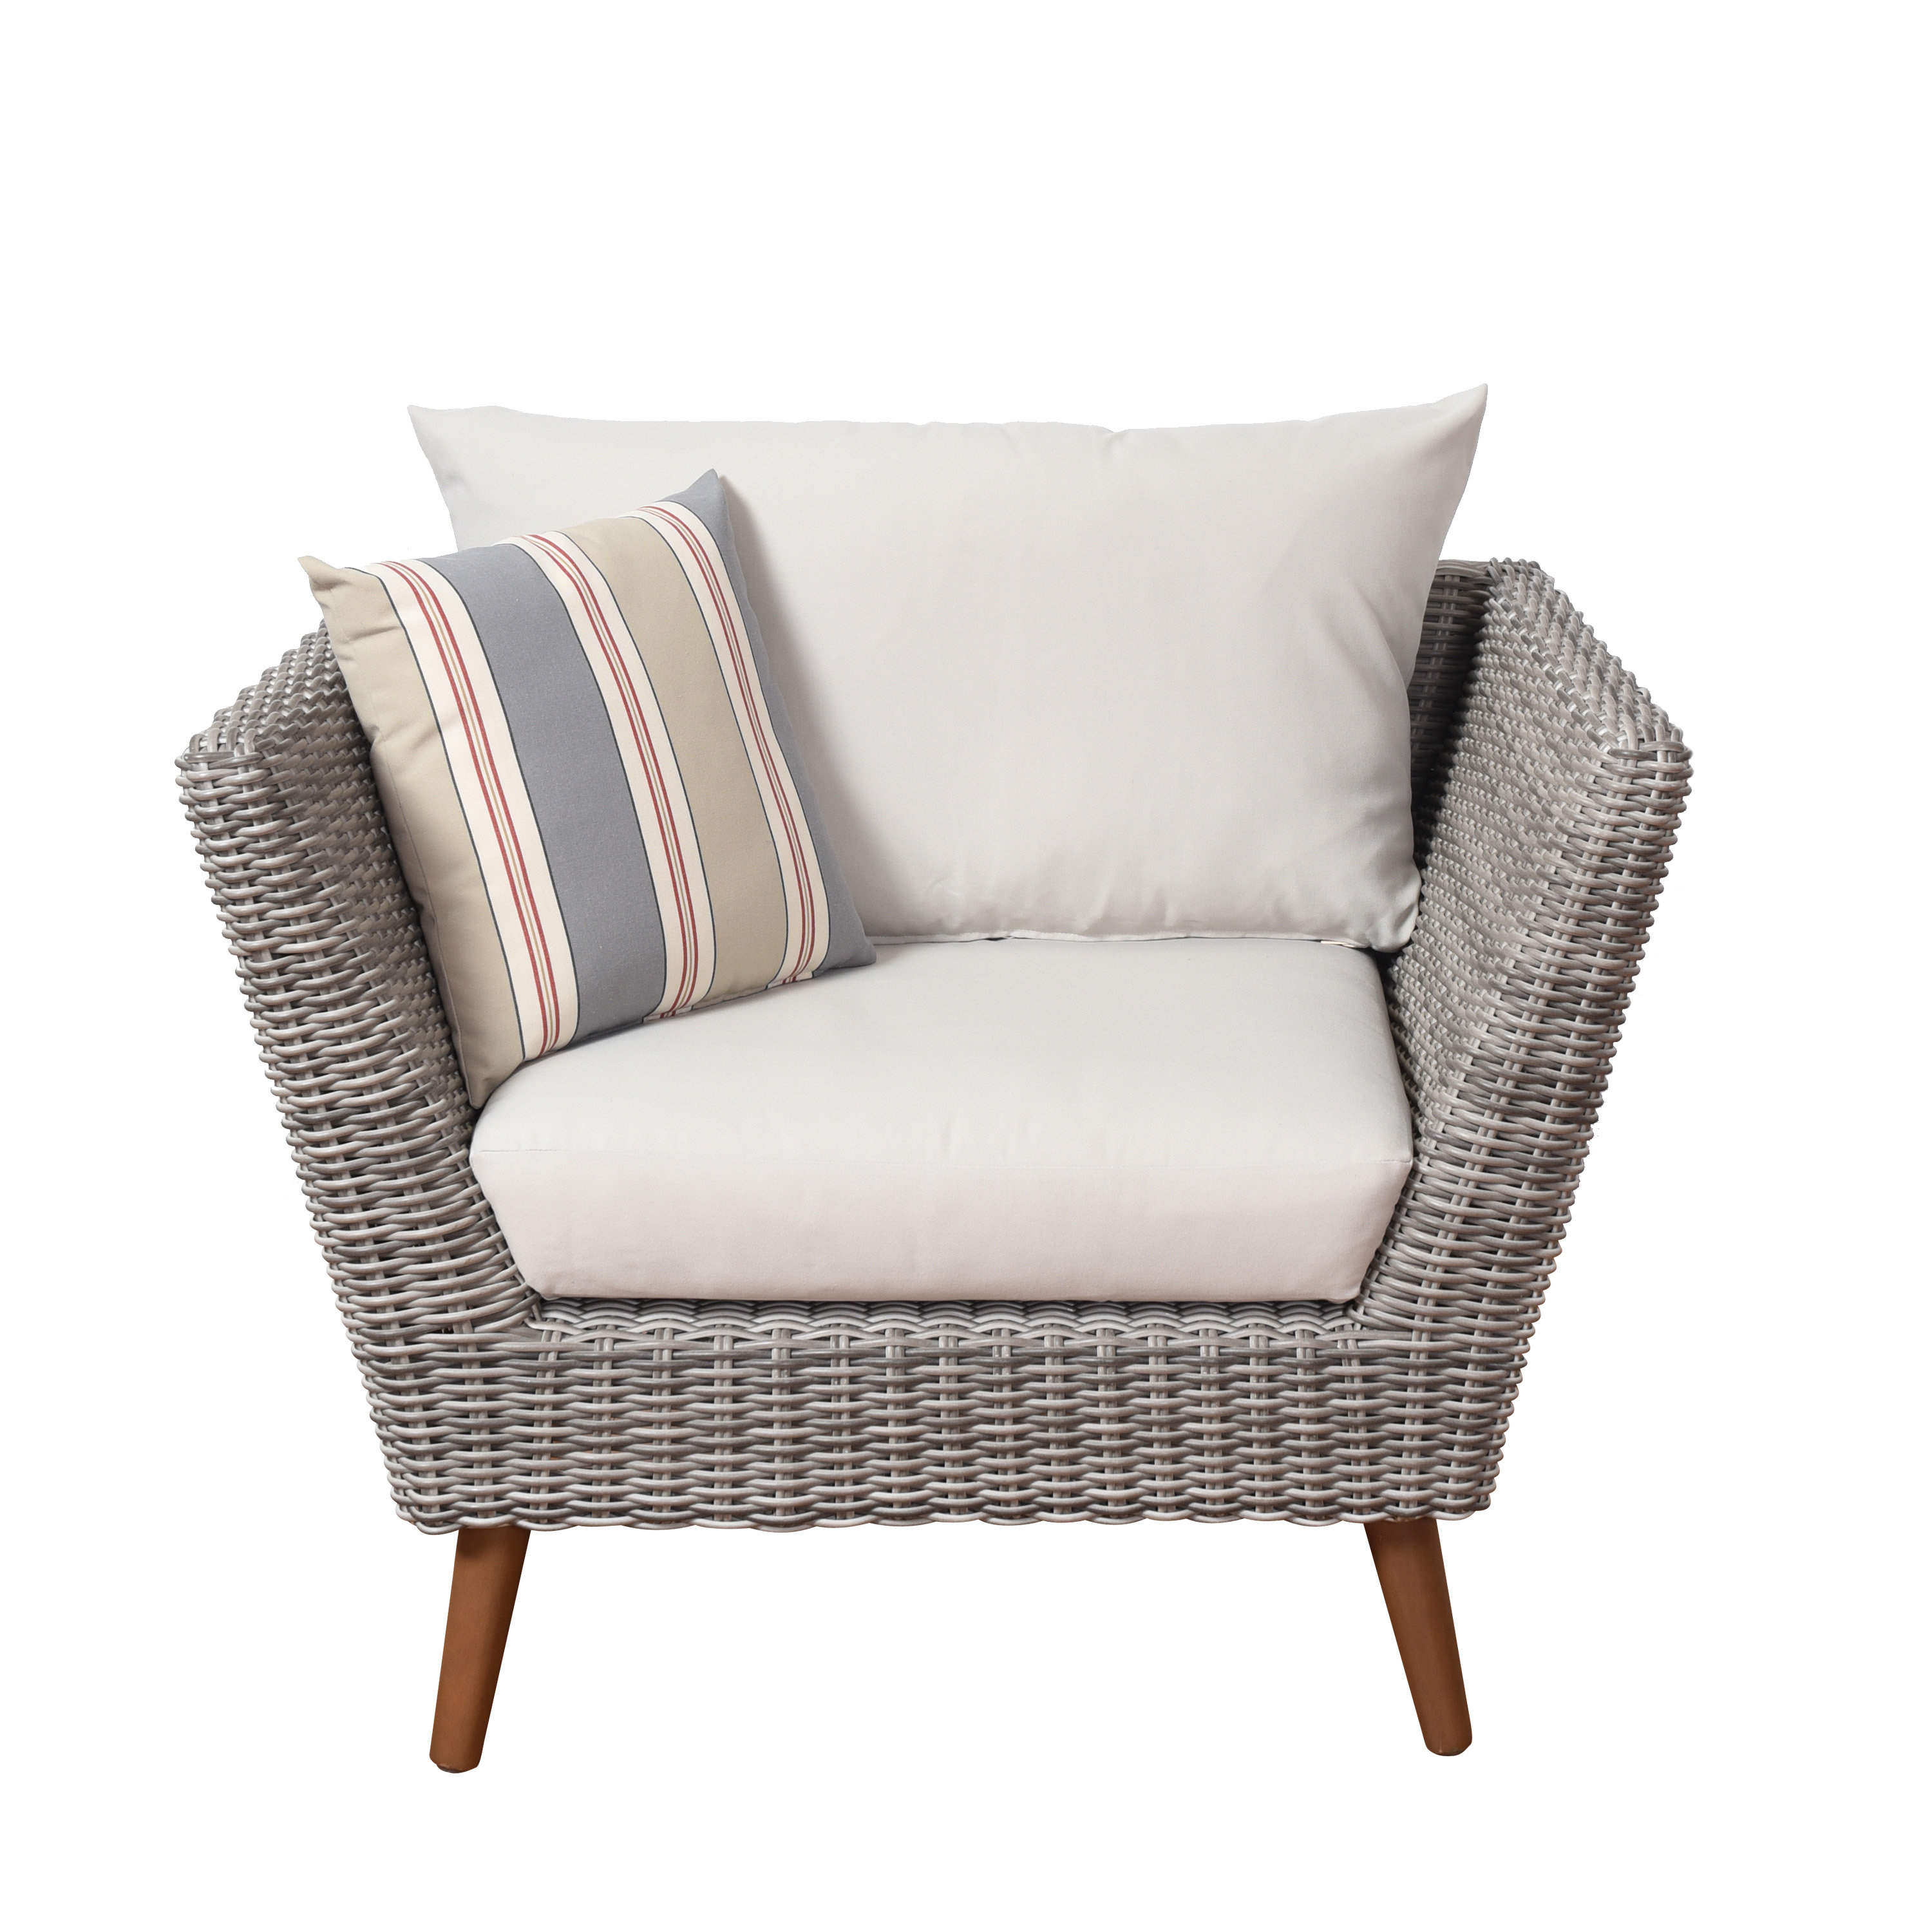 Popular Newbury Patio Chair With Cushions Pertaining To Baltic Patio Sofas With Cushions (View 25 of 25)